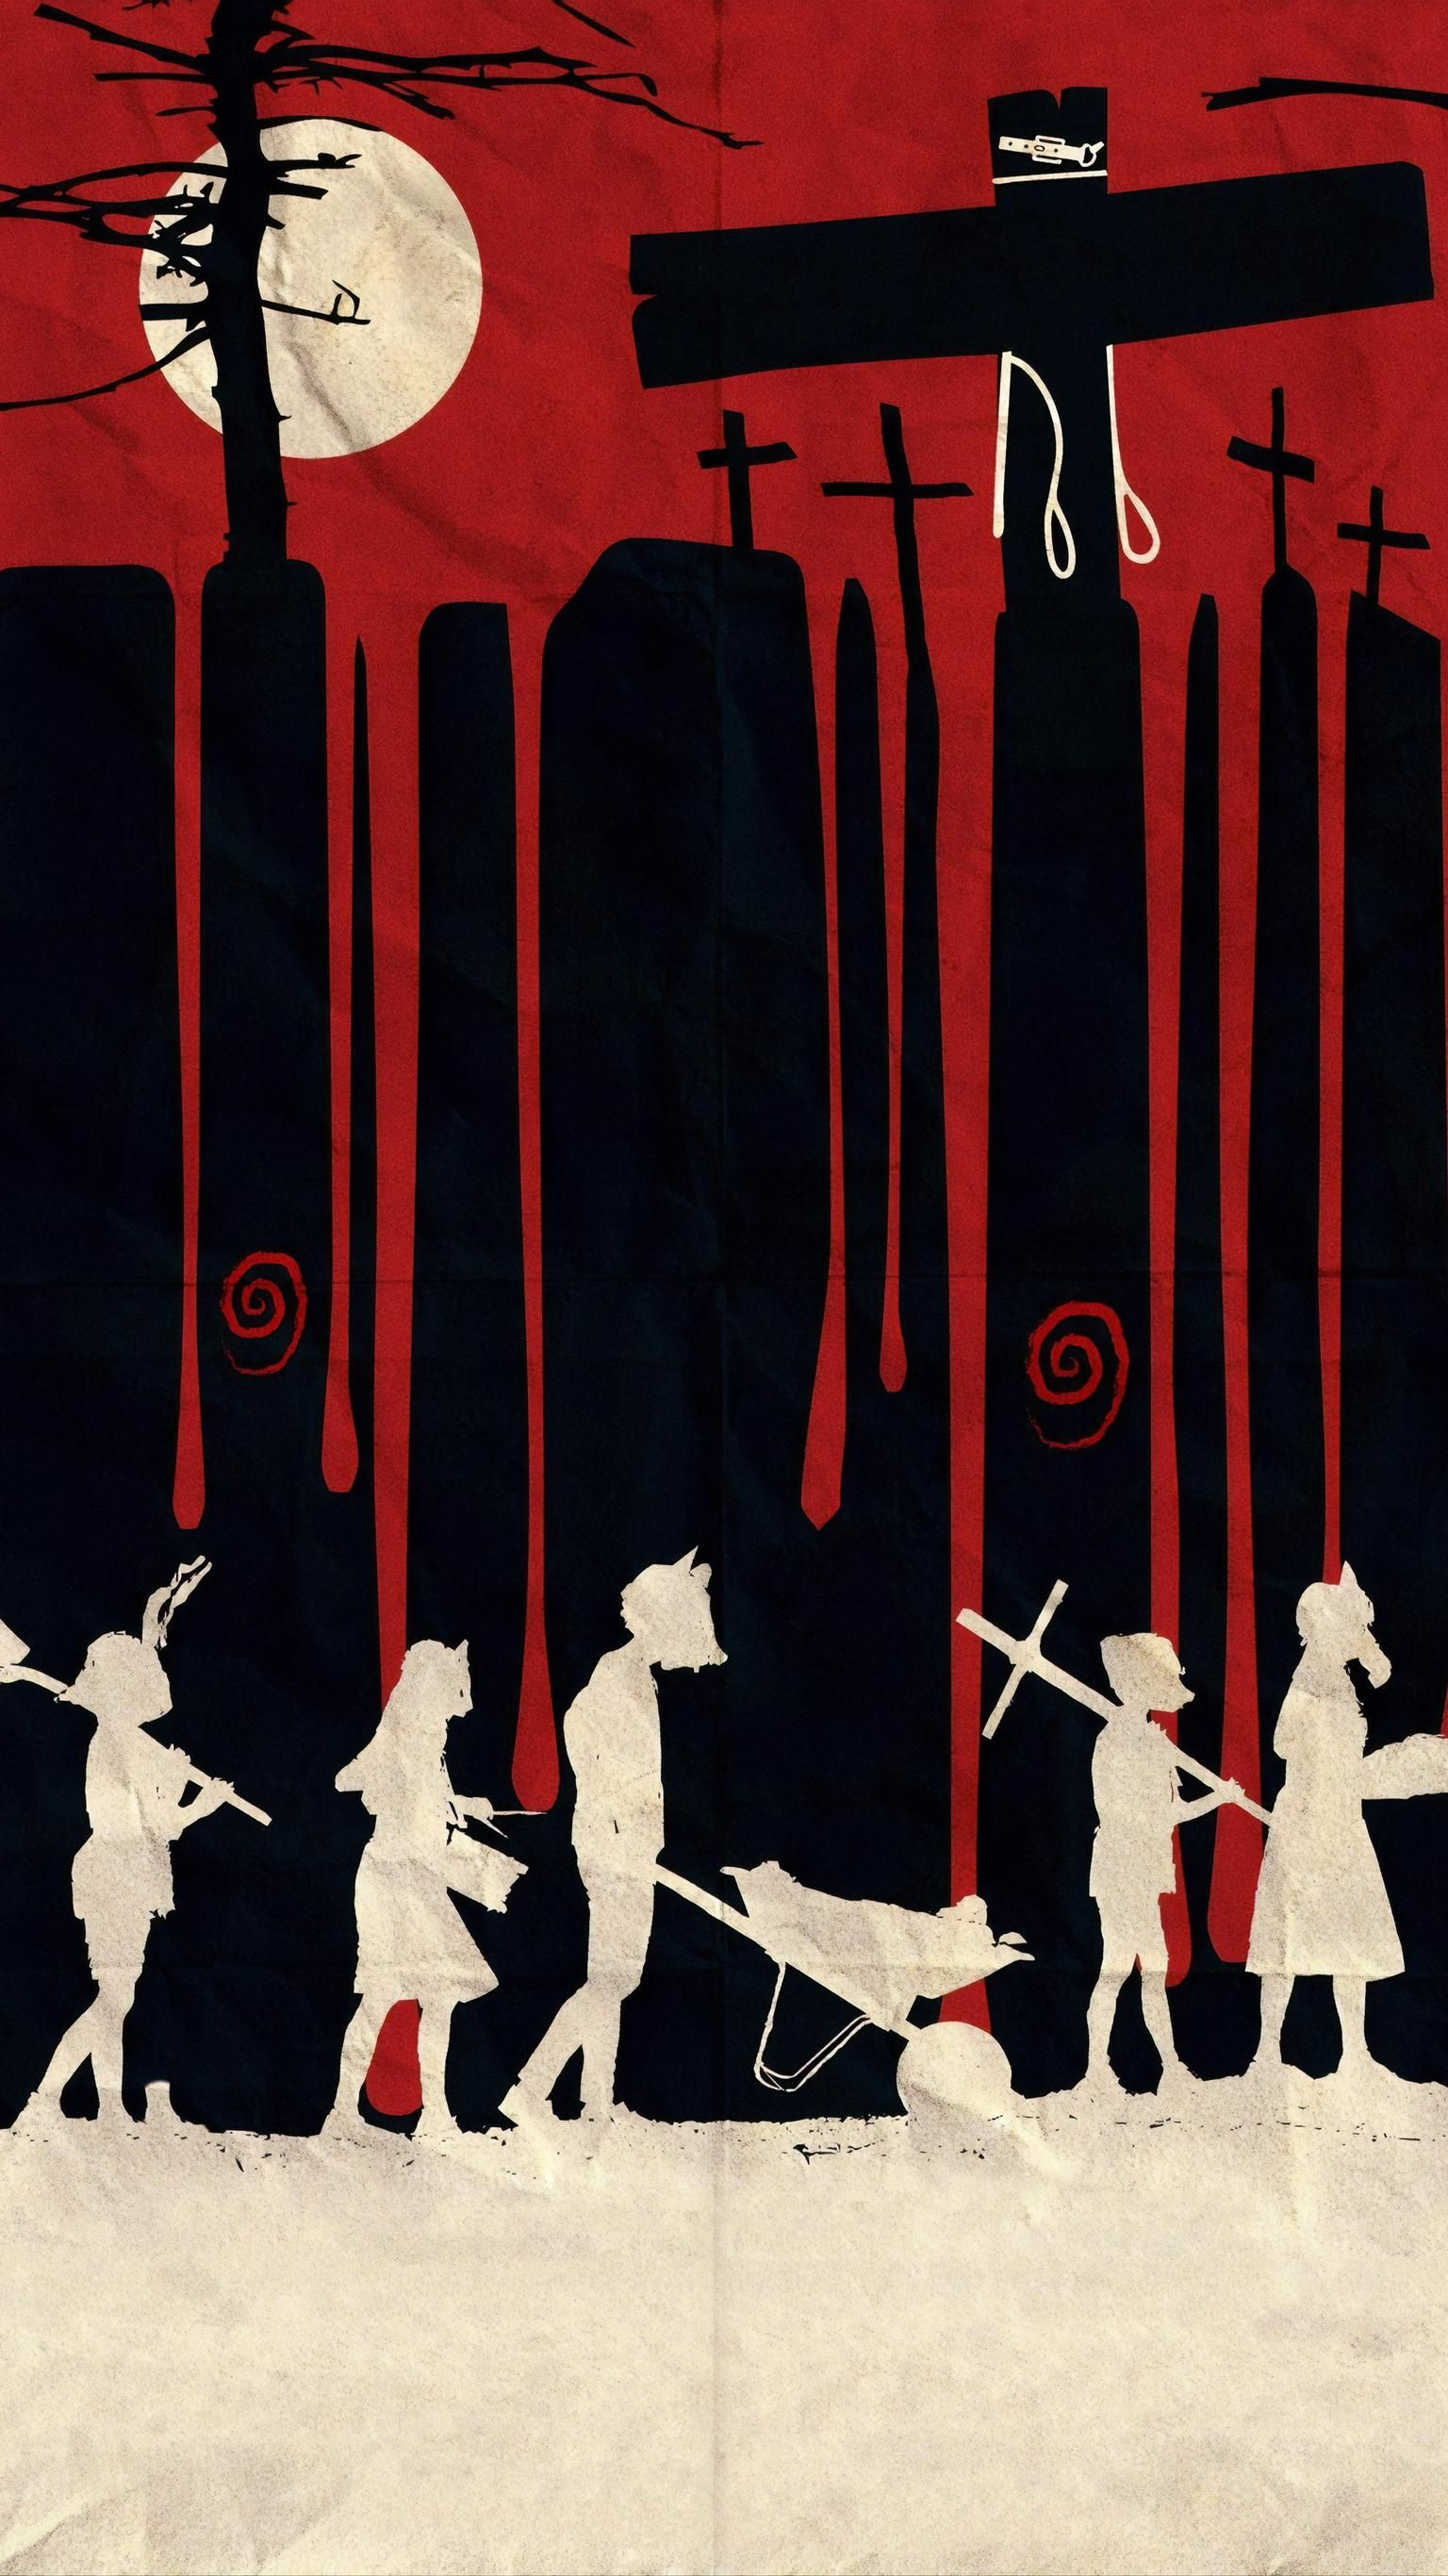 Moviemania Textless High Resolution Movie Wallpapers Pet Sematary Scary Art Movie Posters Minimalist